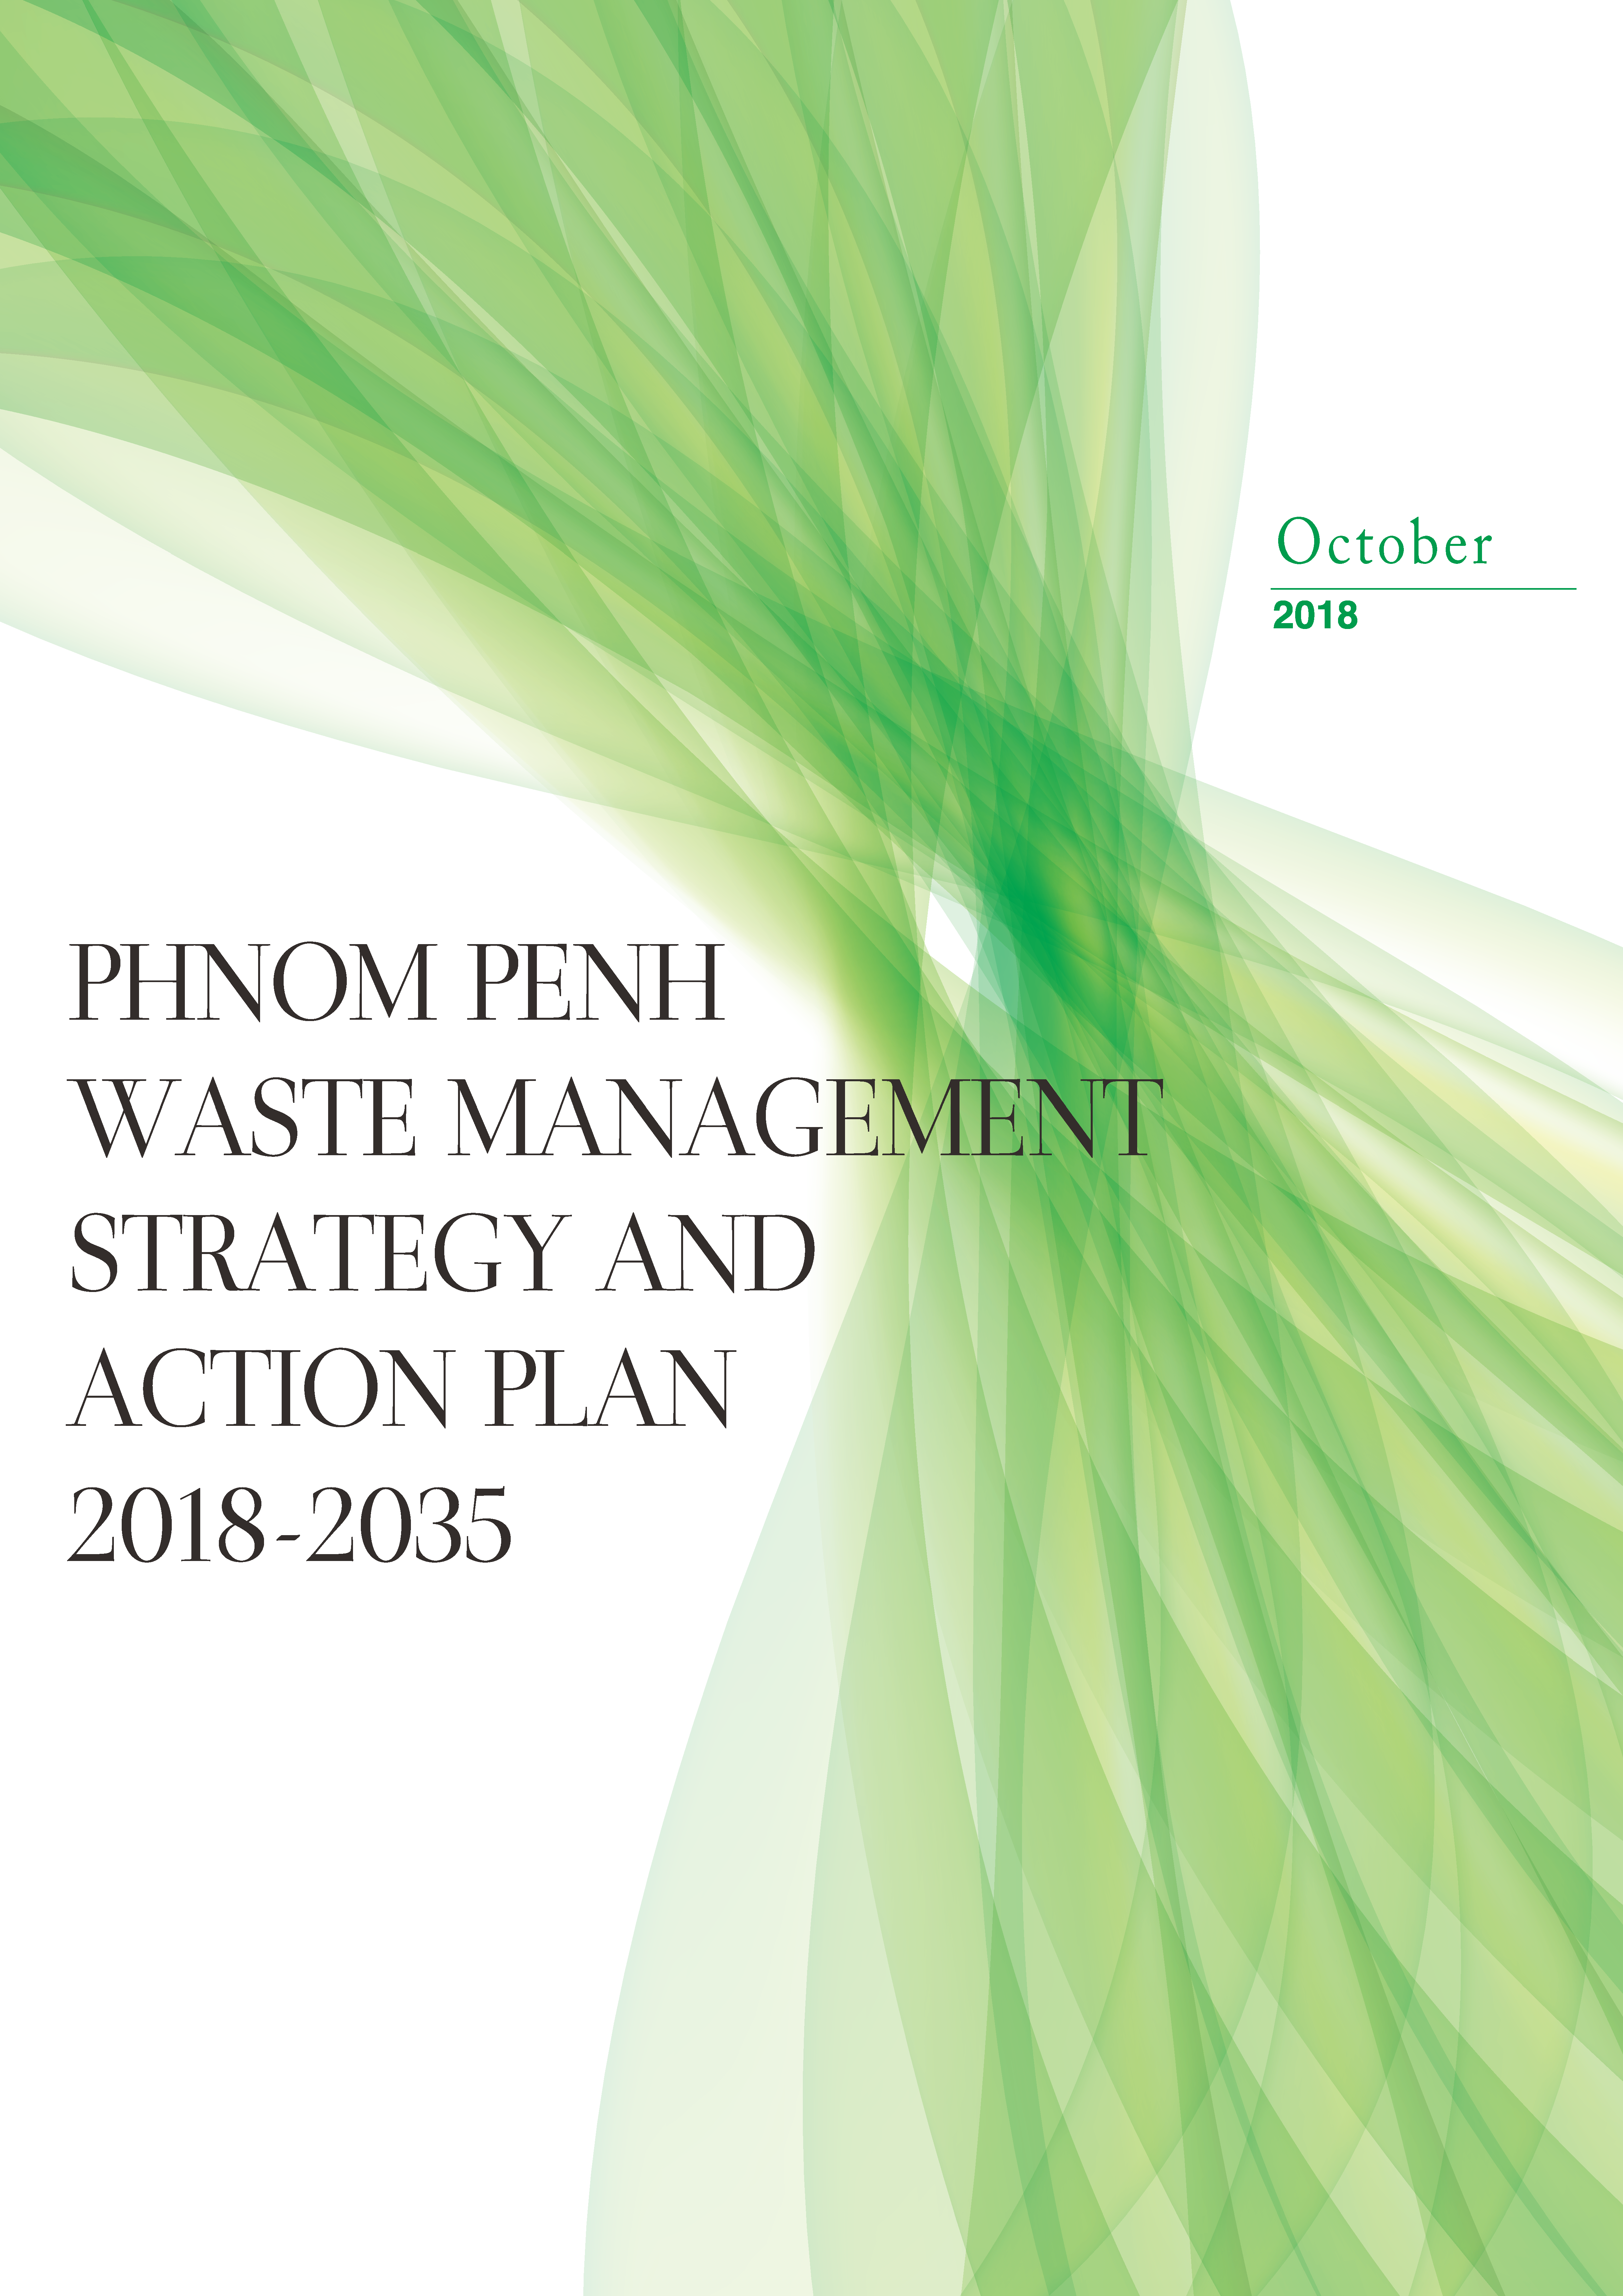 Phnom_Penh_Waste_Management_Strategy_2018-2035